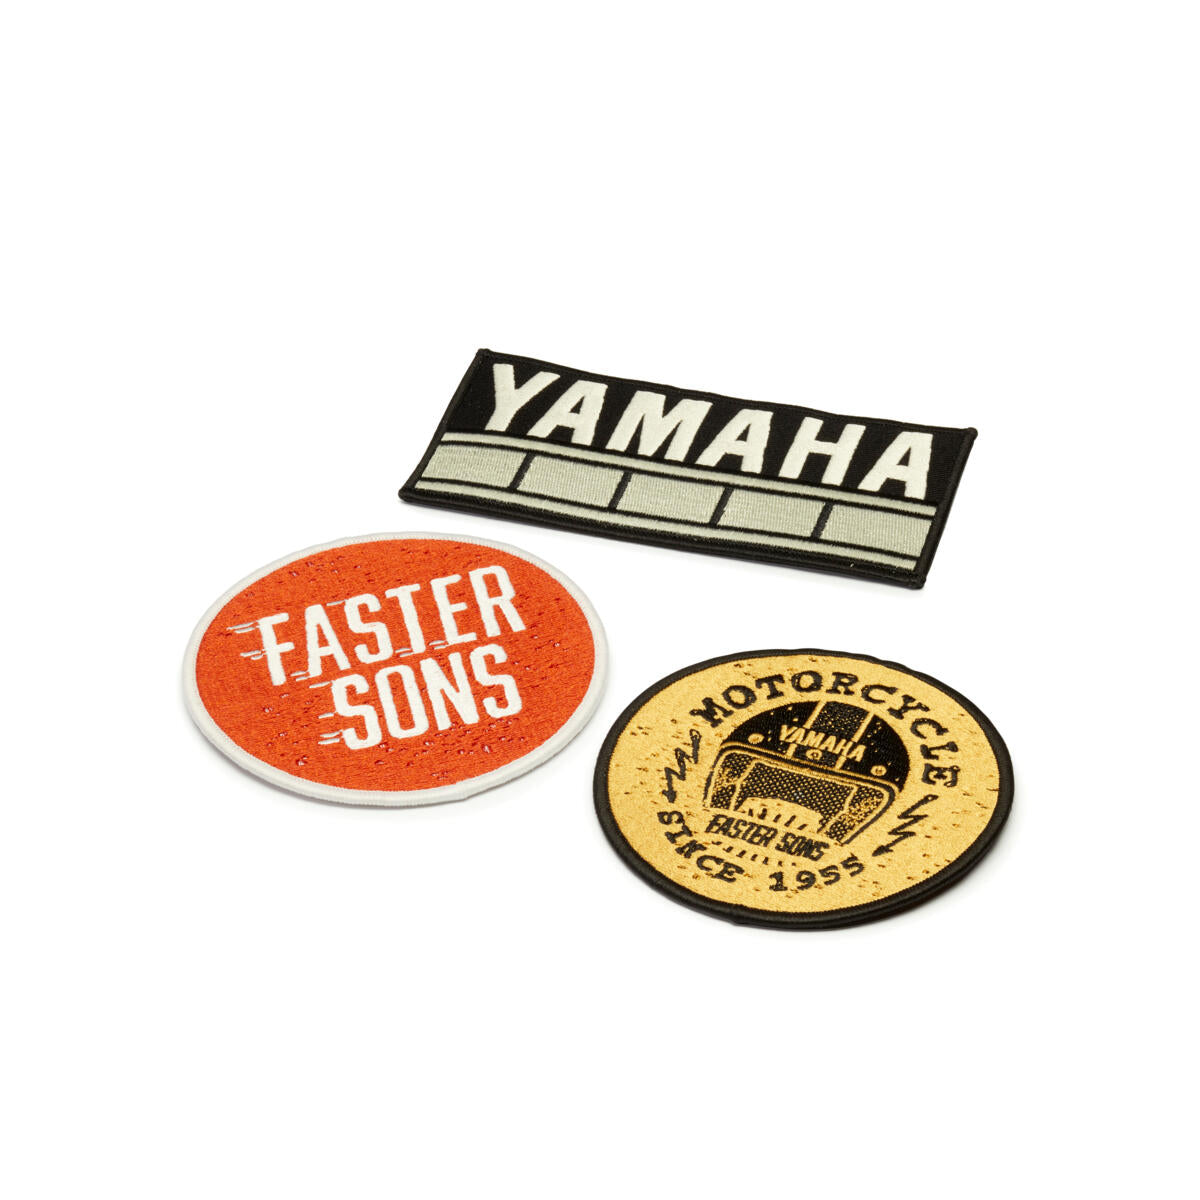 Faster Sons Patches - set of 3